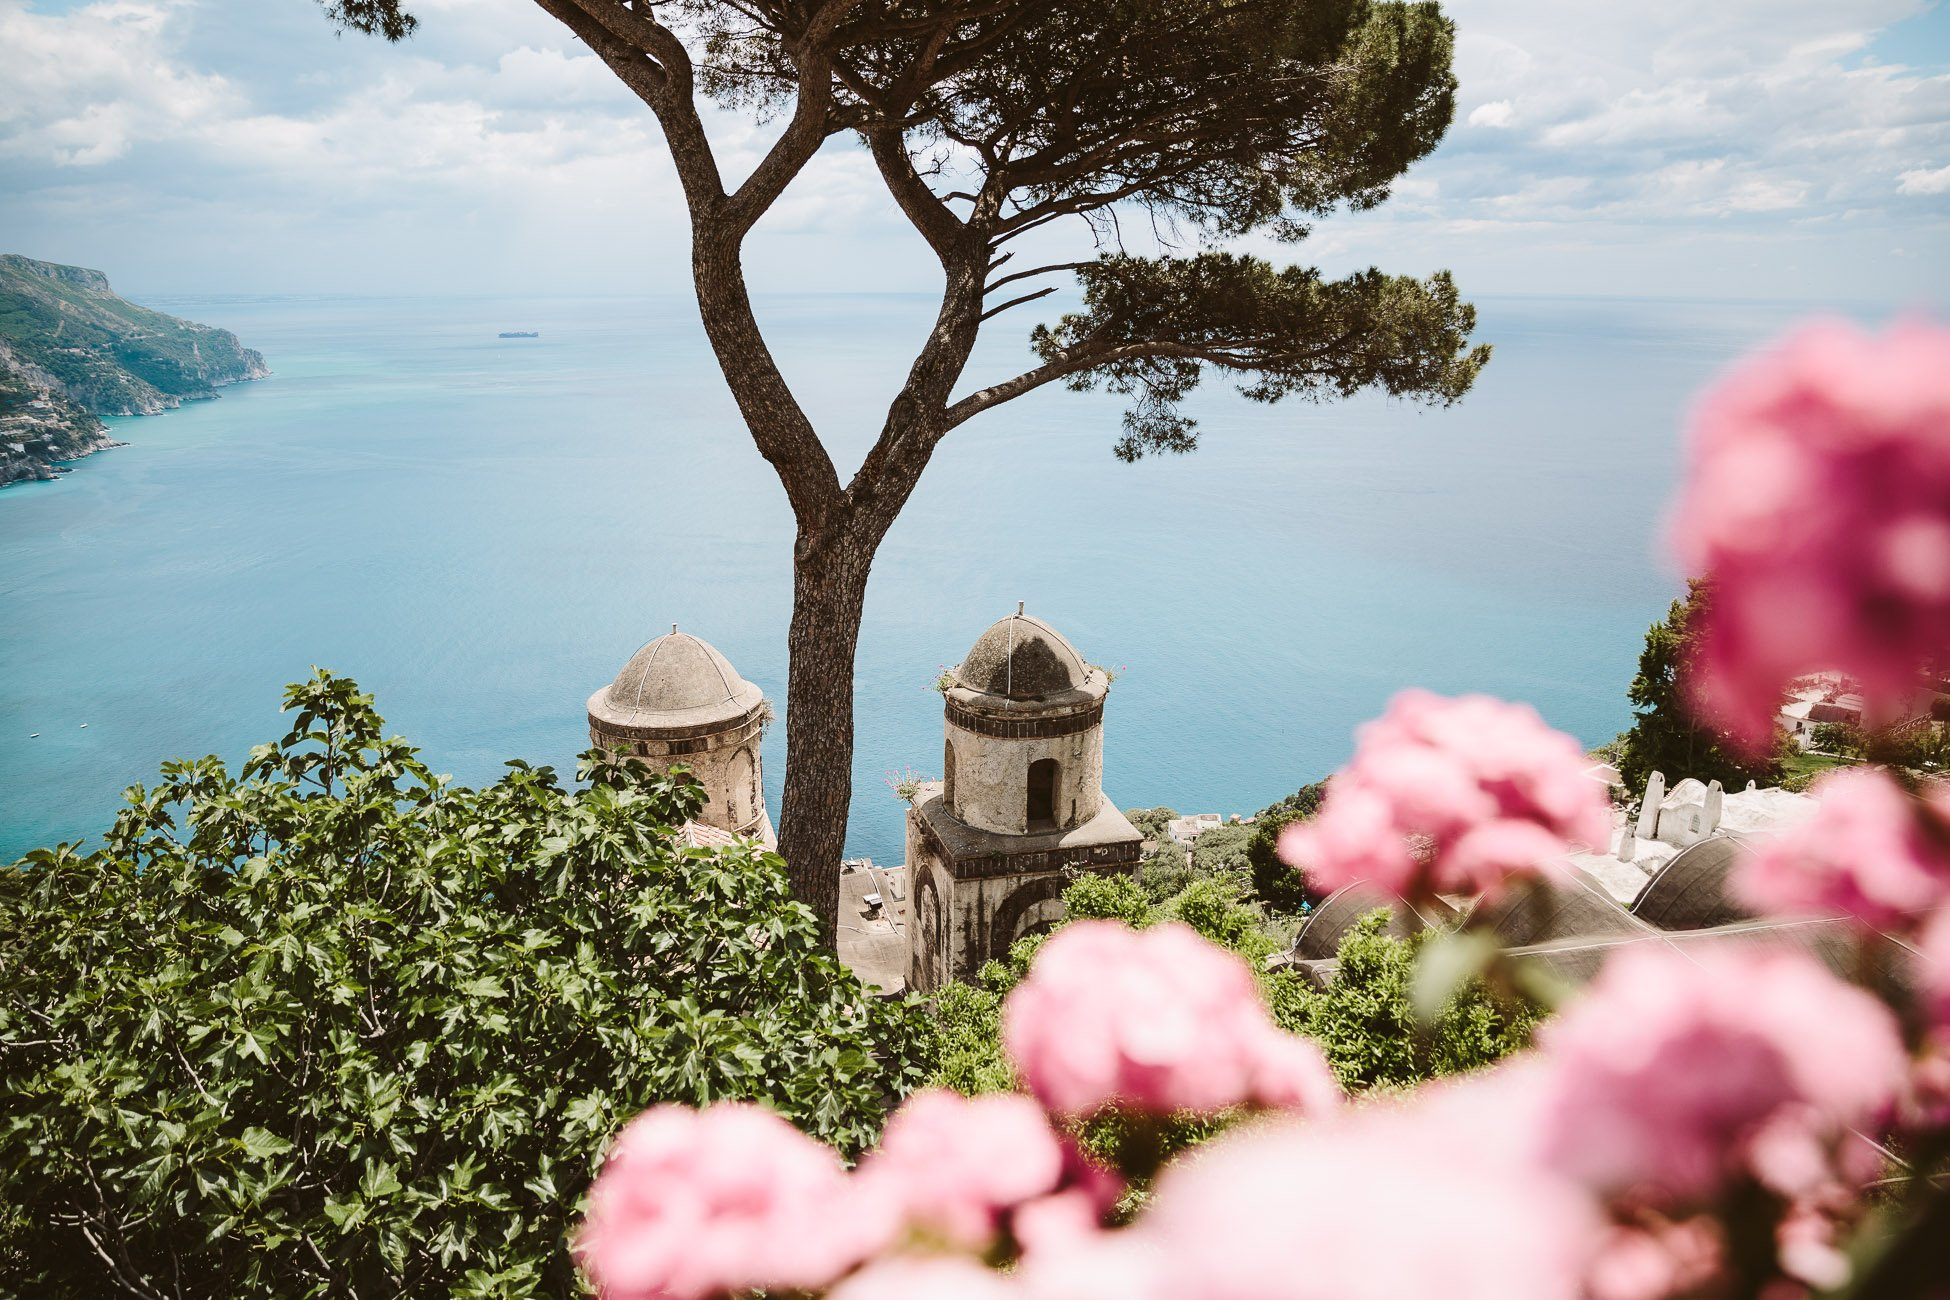 The famous lookout spot from Villa Rufolo in Ravello